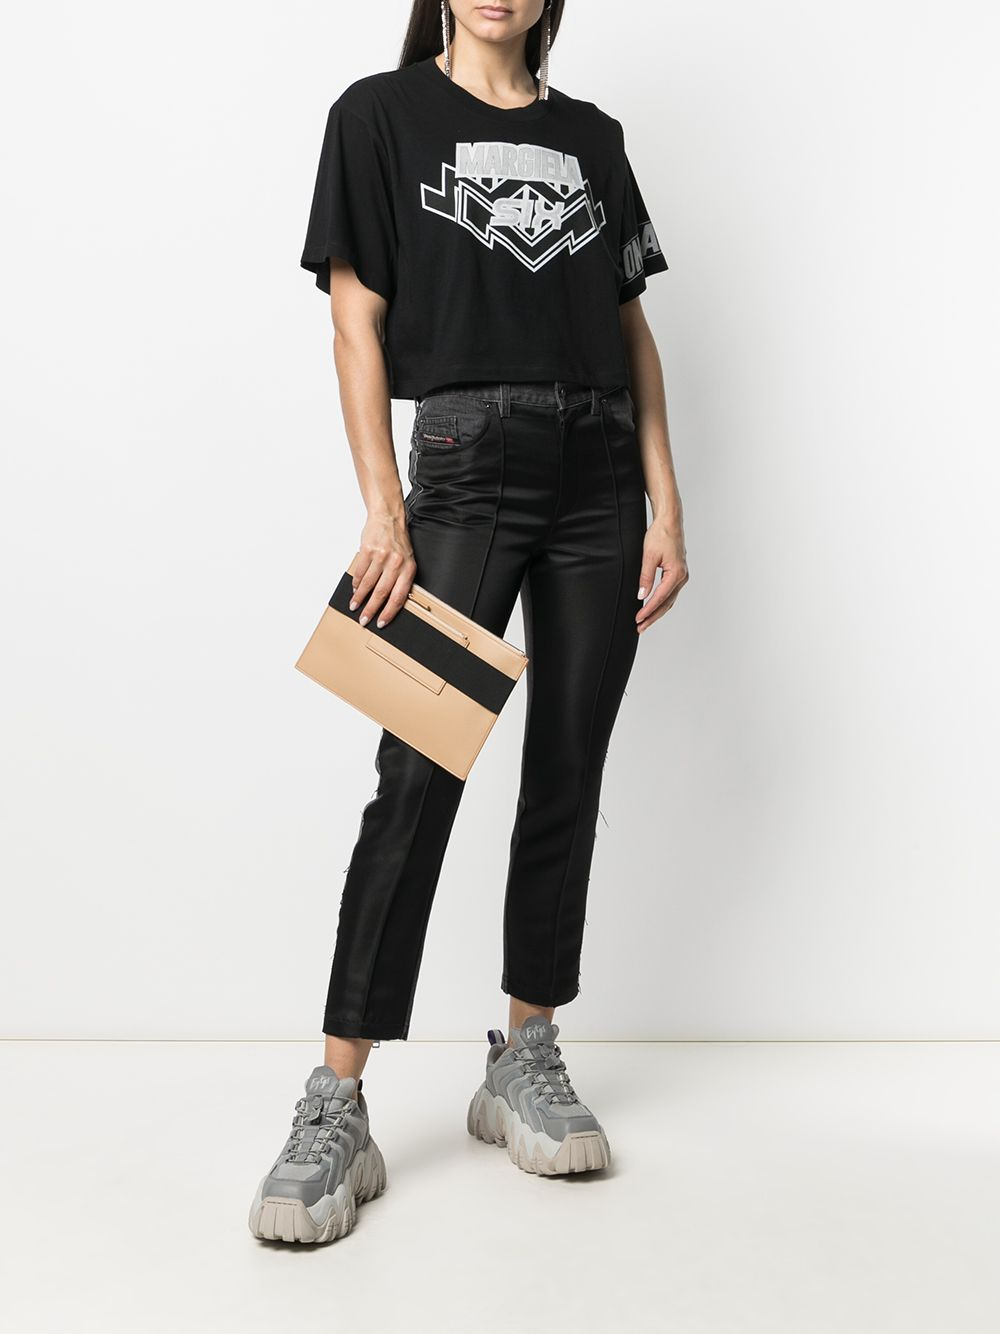 MM6 WOMEN MARGIELA SIX T-SHIRT